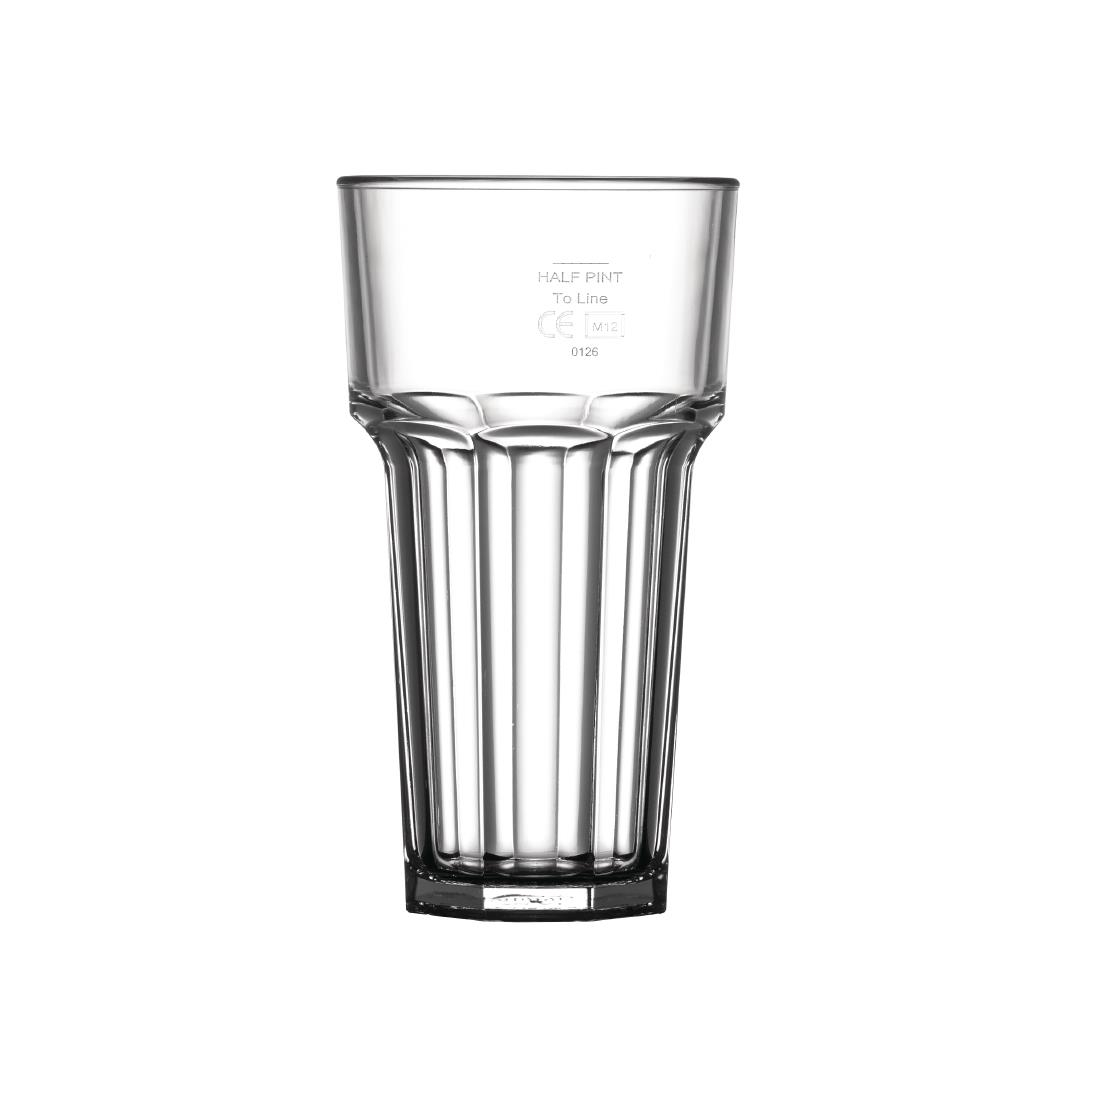 Image of BBP Polycarbonate American Hi Ball Glasses Lined Half Pint CE Marked at 285ml Pack of 36